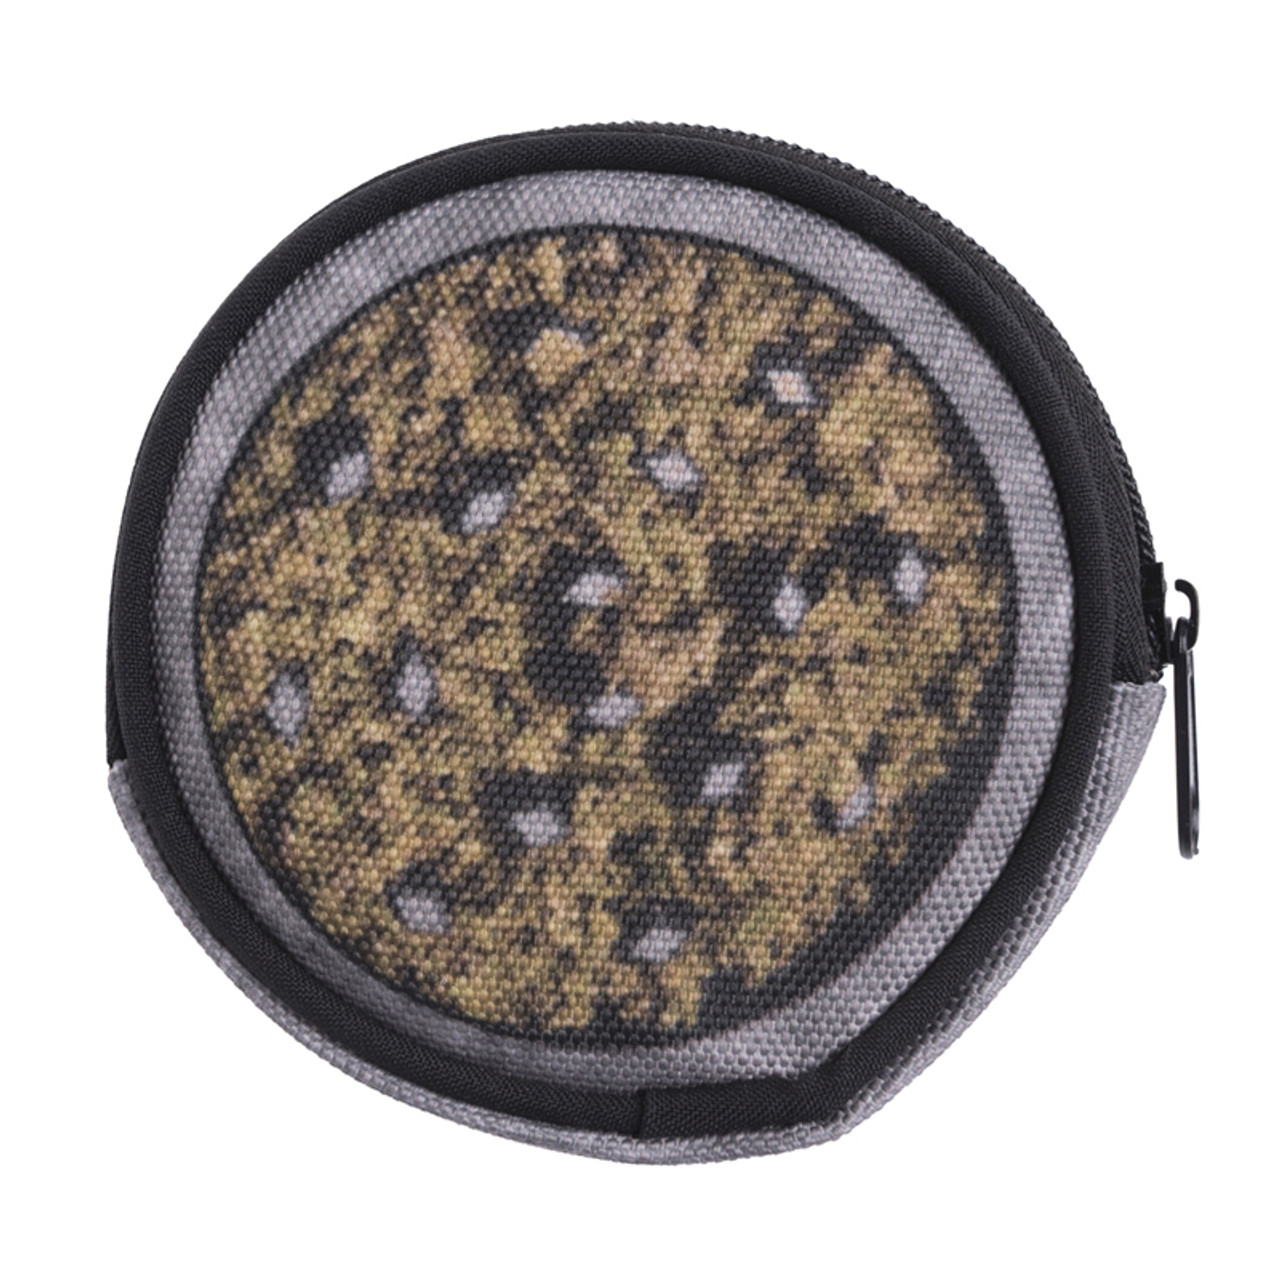 Weed Grinder Round Graphic Print Coin Purse - 18 Styles